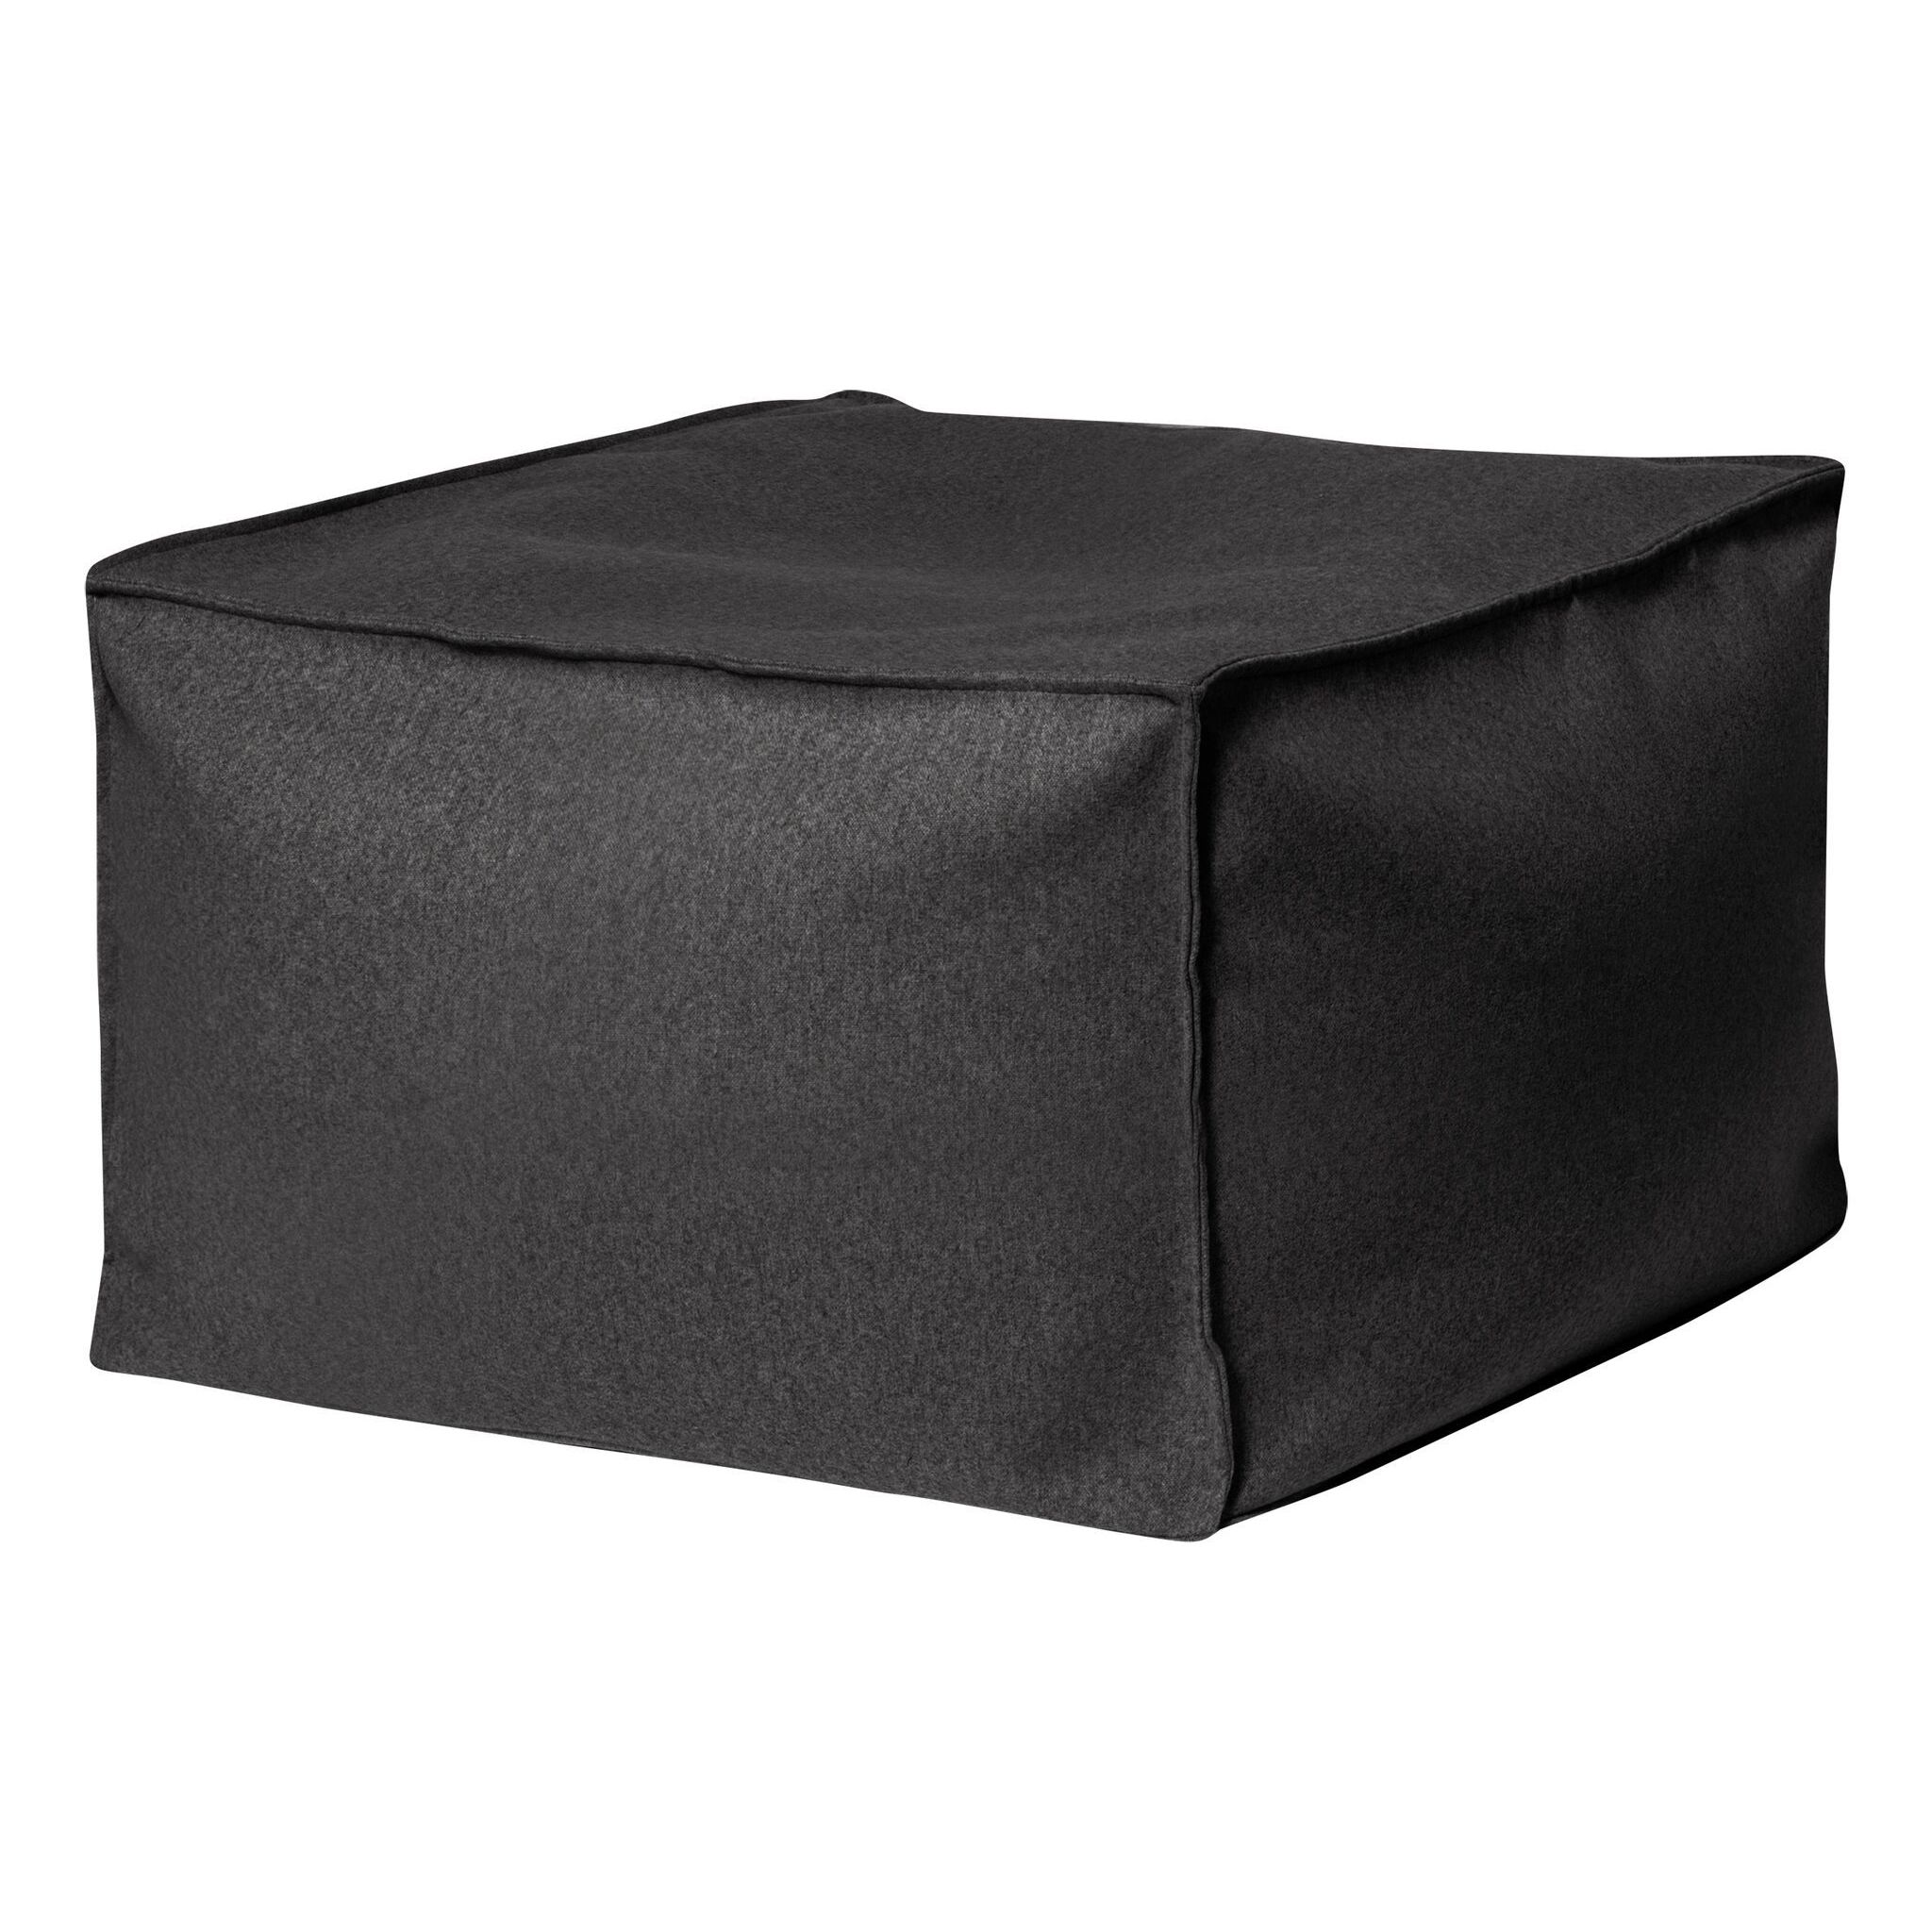 pdx preas reviews wrought furniture pouf studio ottoman wayfair poof